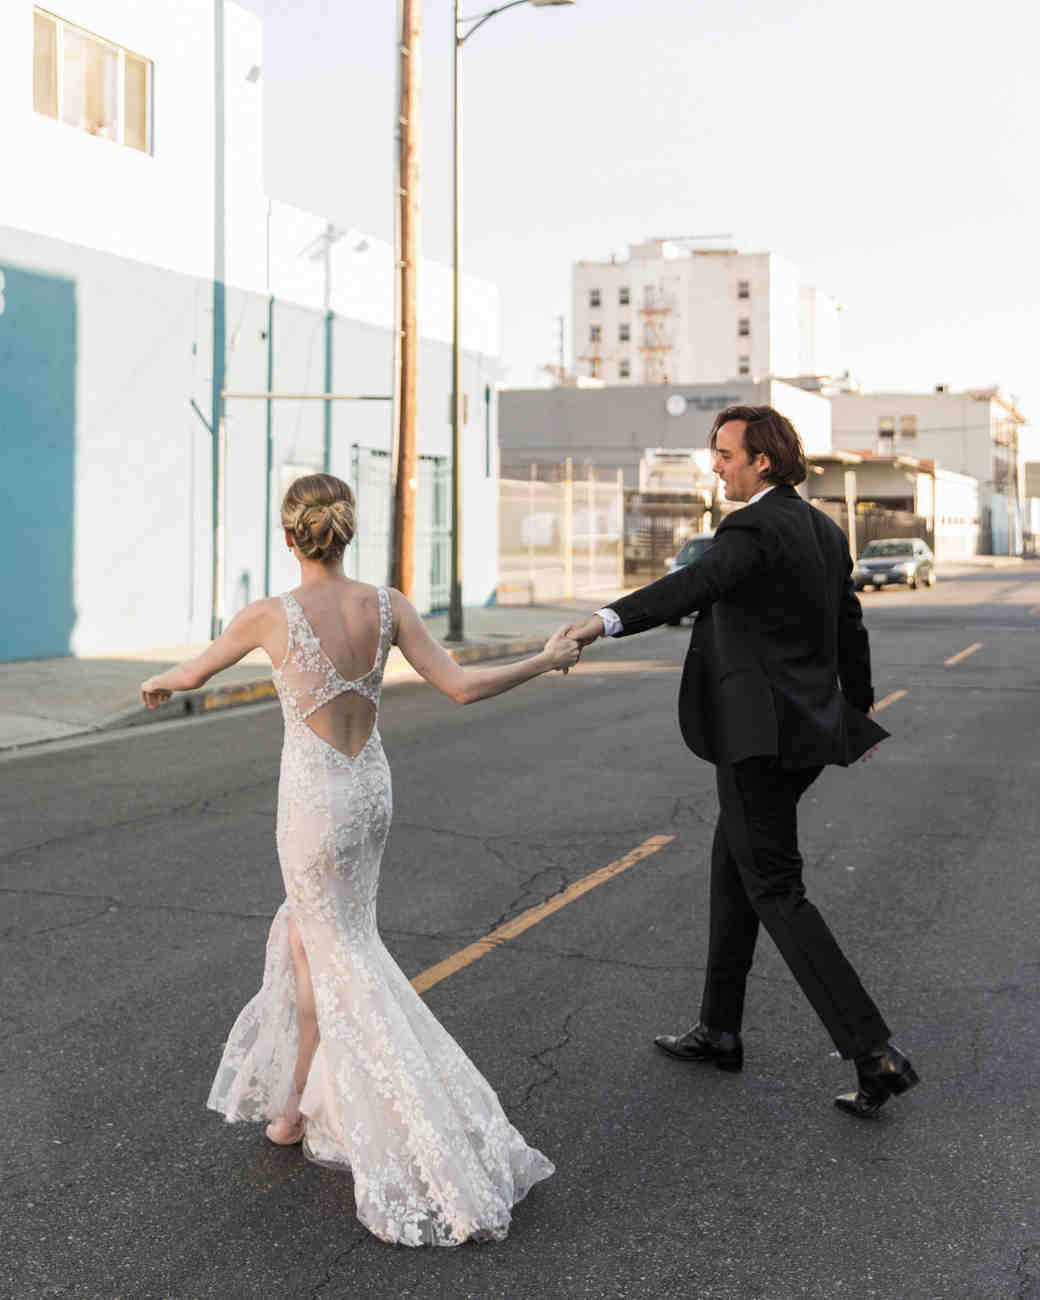 wedding couple hold hands walking across street in wedding clothes